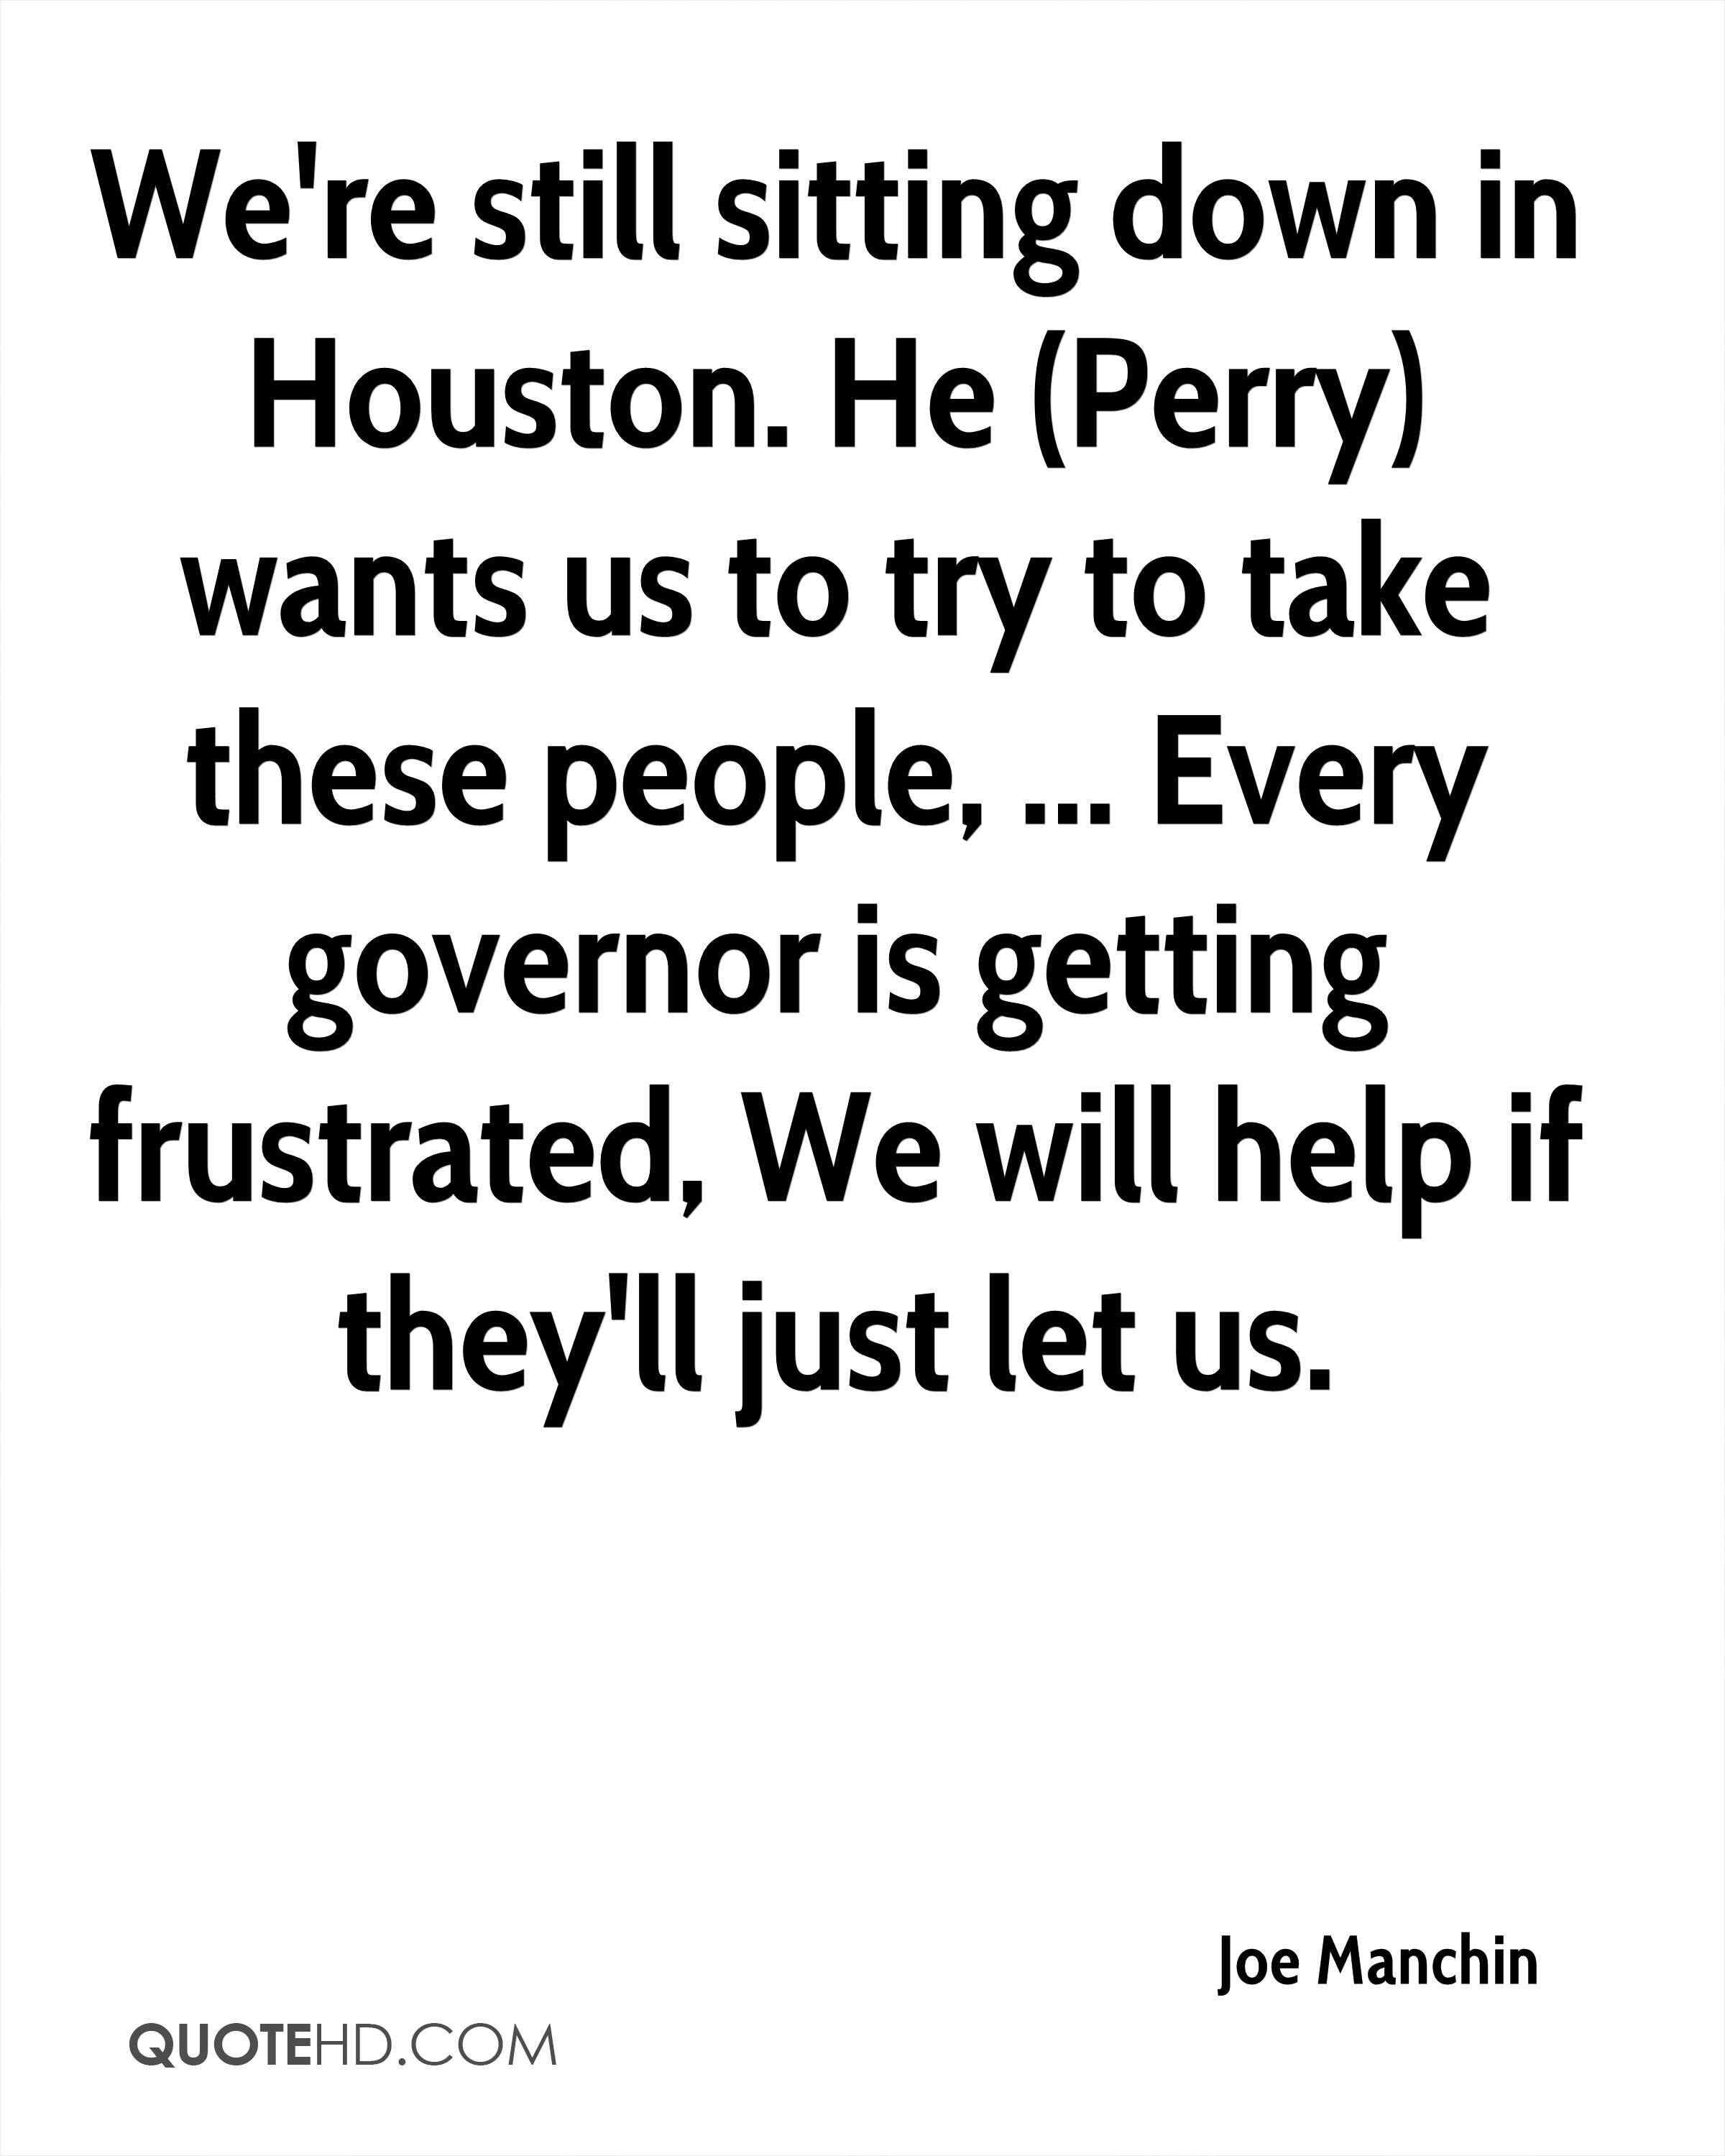 We're still sitting down in Houston. He (Perry) wants us to try to take these people, ... Every governor is getting frustrated, We will help if they'll just let us.